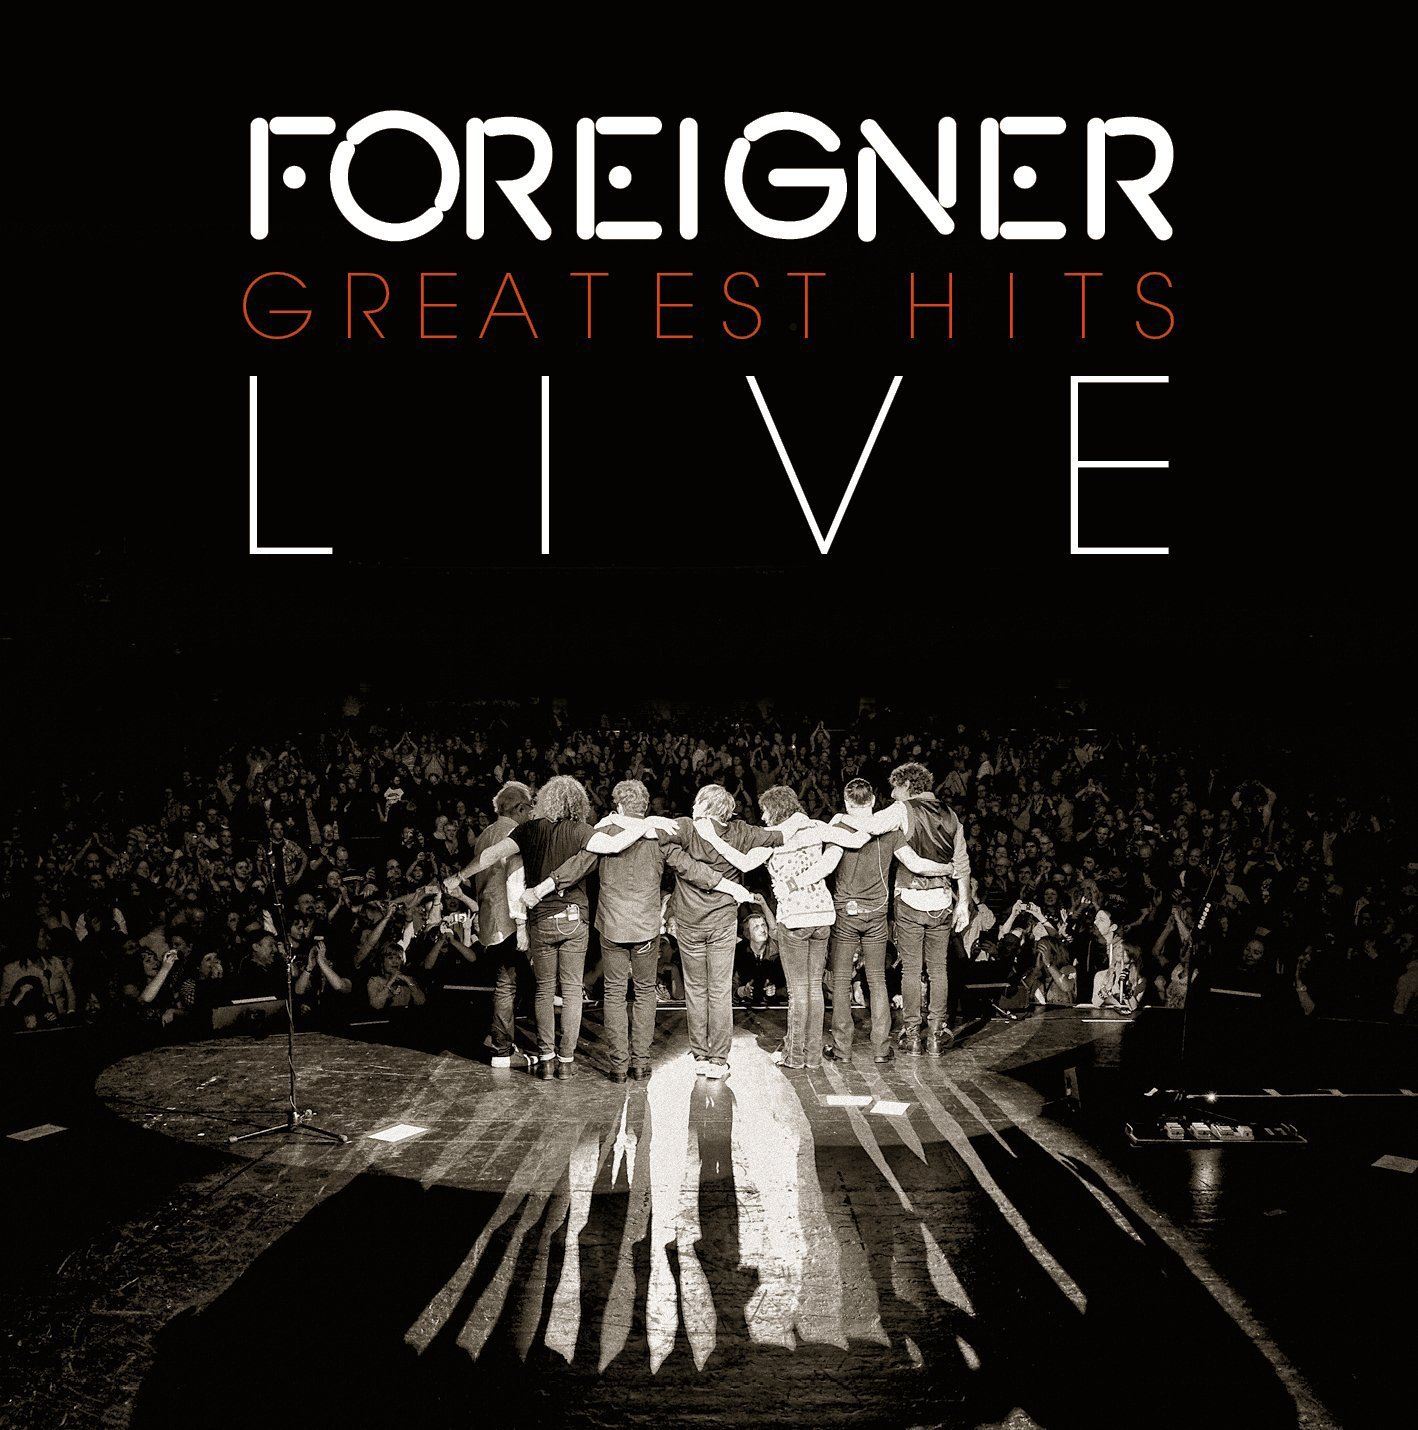 FOREIGNER Greatest Hits Live